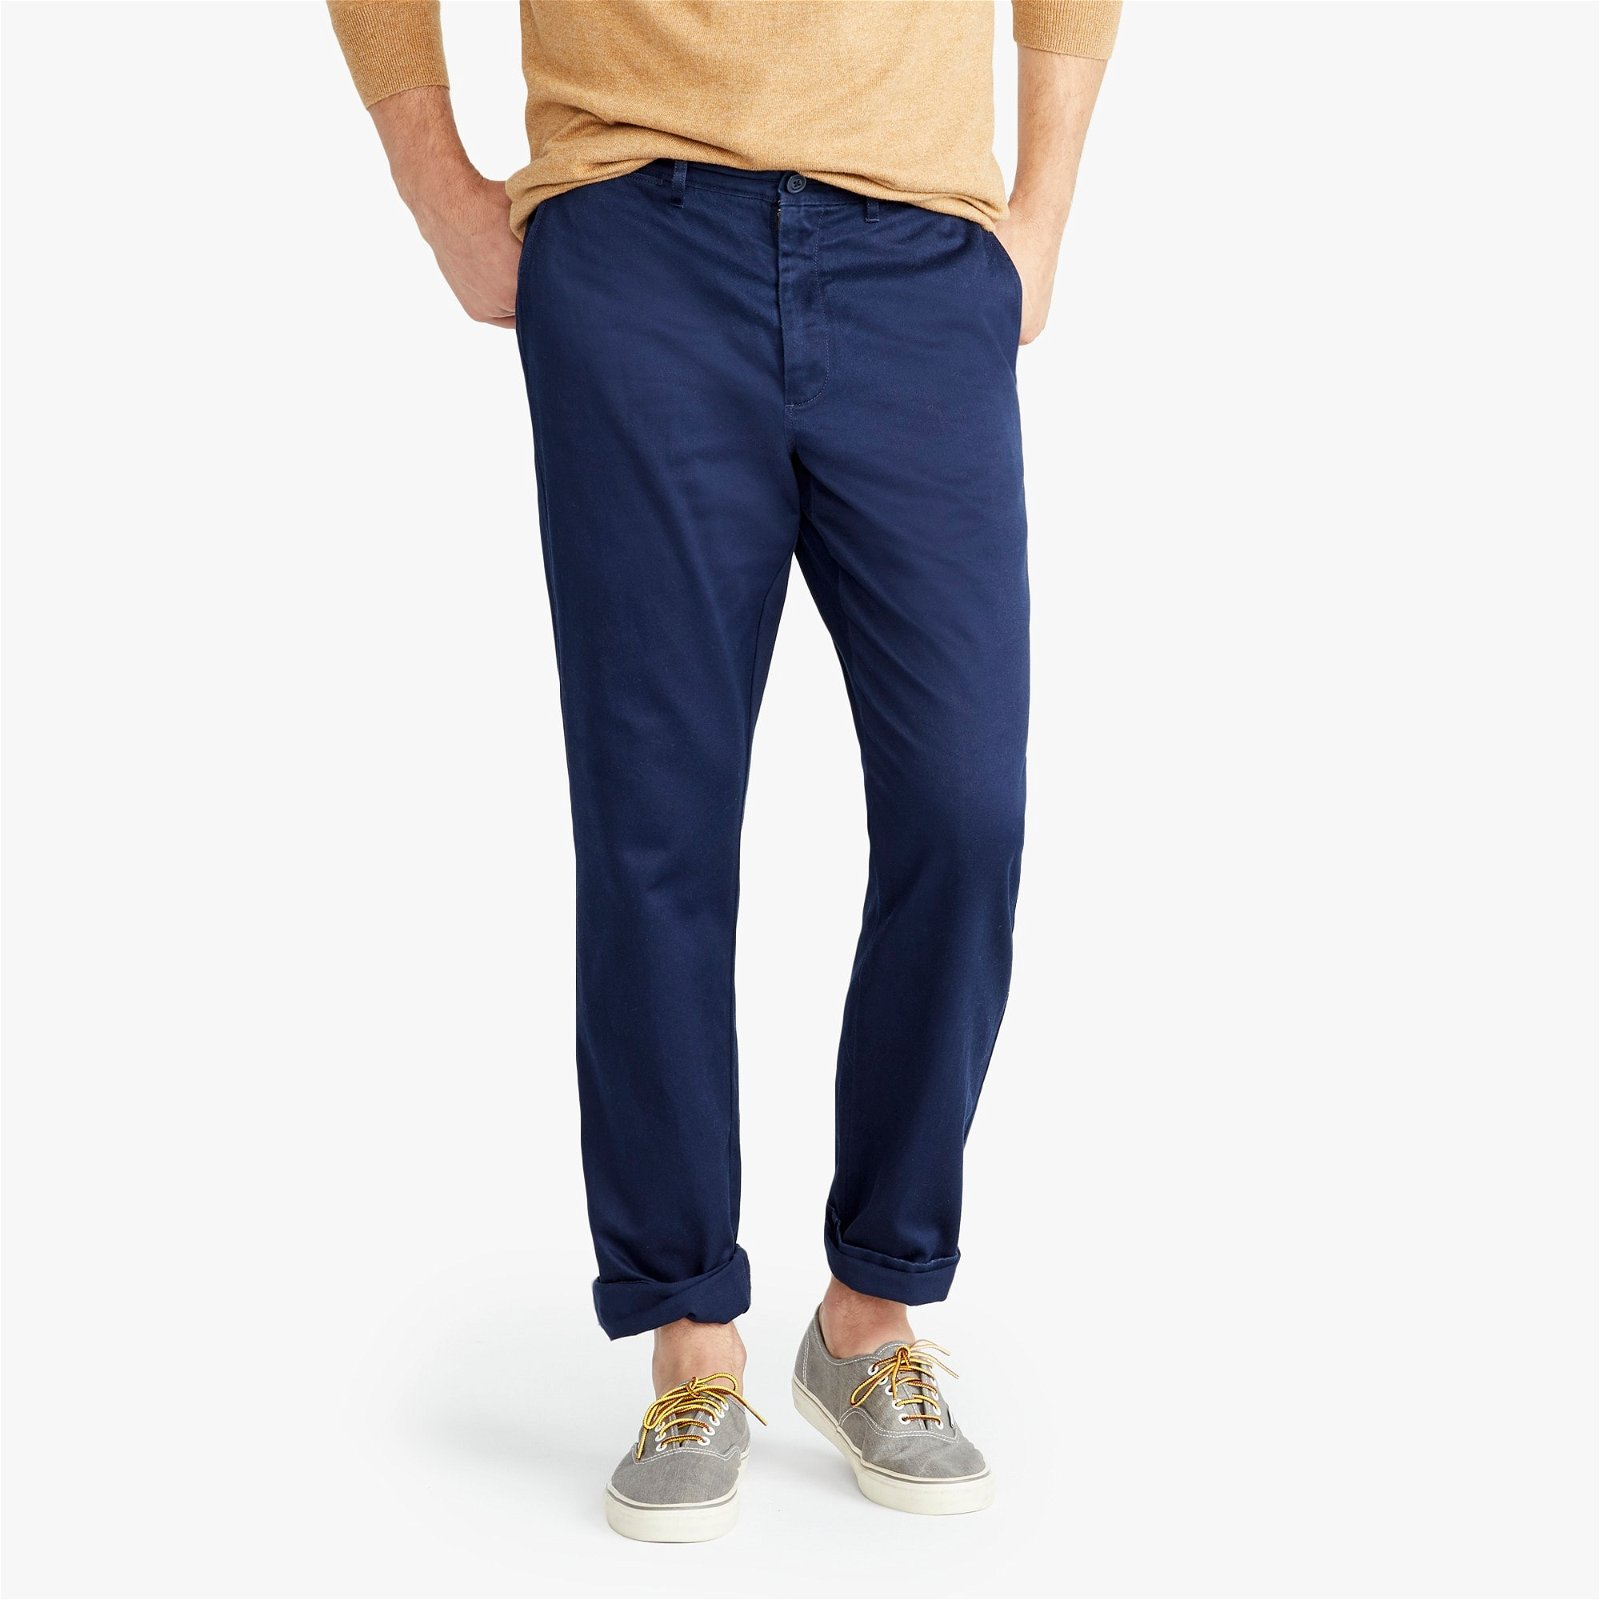 1040 Athletic-fit stretch chino pant